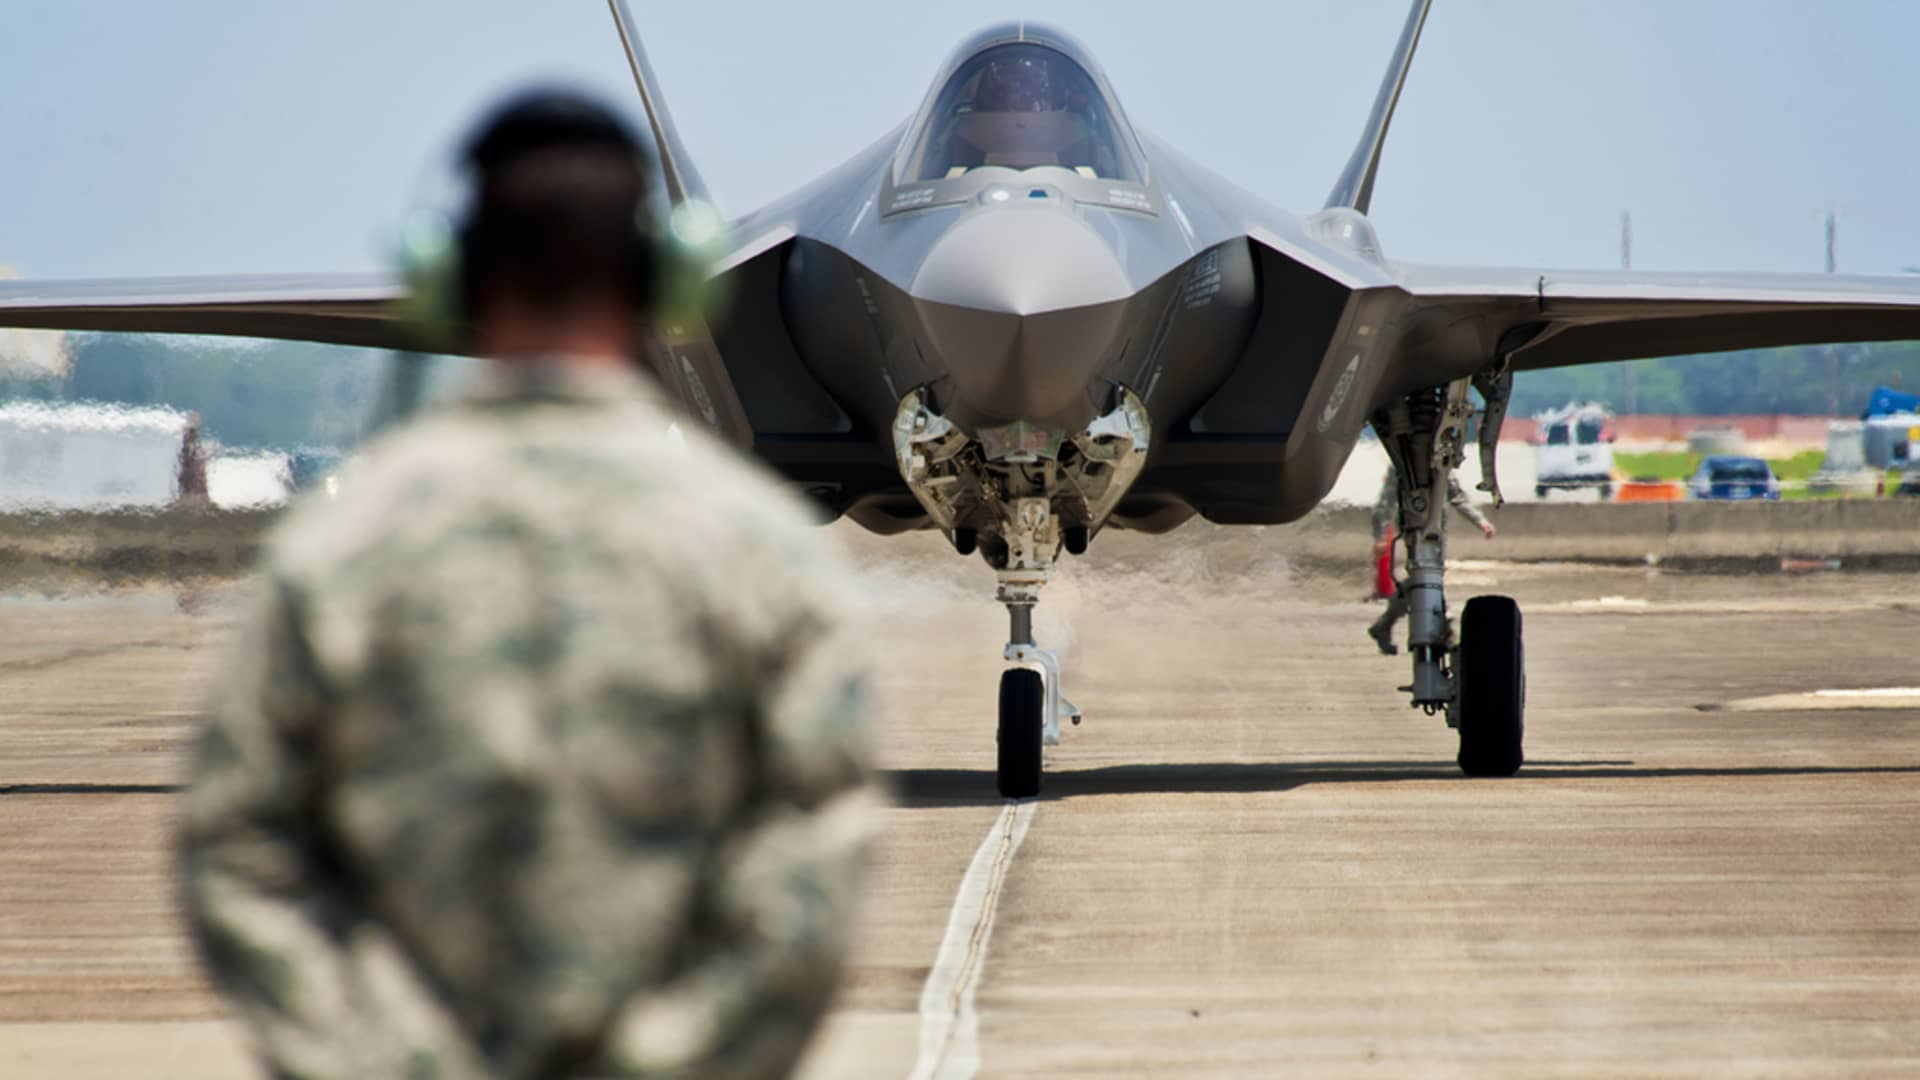 A U.S. Air Force F-35 Lightning II joint strike fighter approaches at Eglin Air Force Base, Florida.